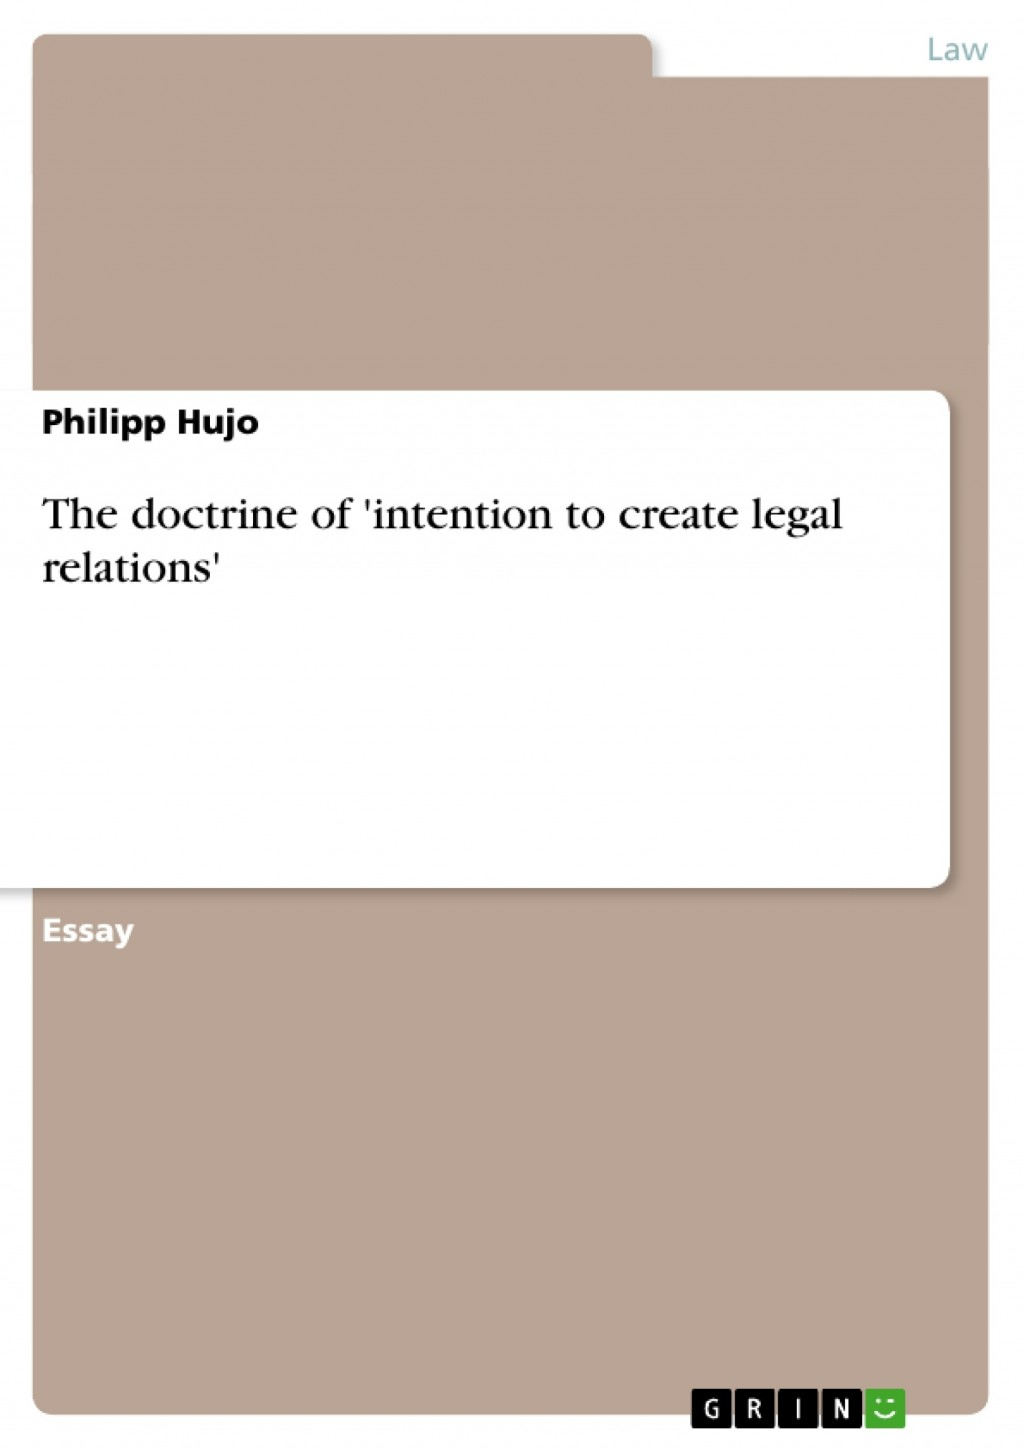 005 109929 0 Essay Example Intention To Create Legal Unbelievable Relations Large